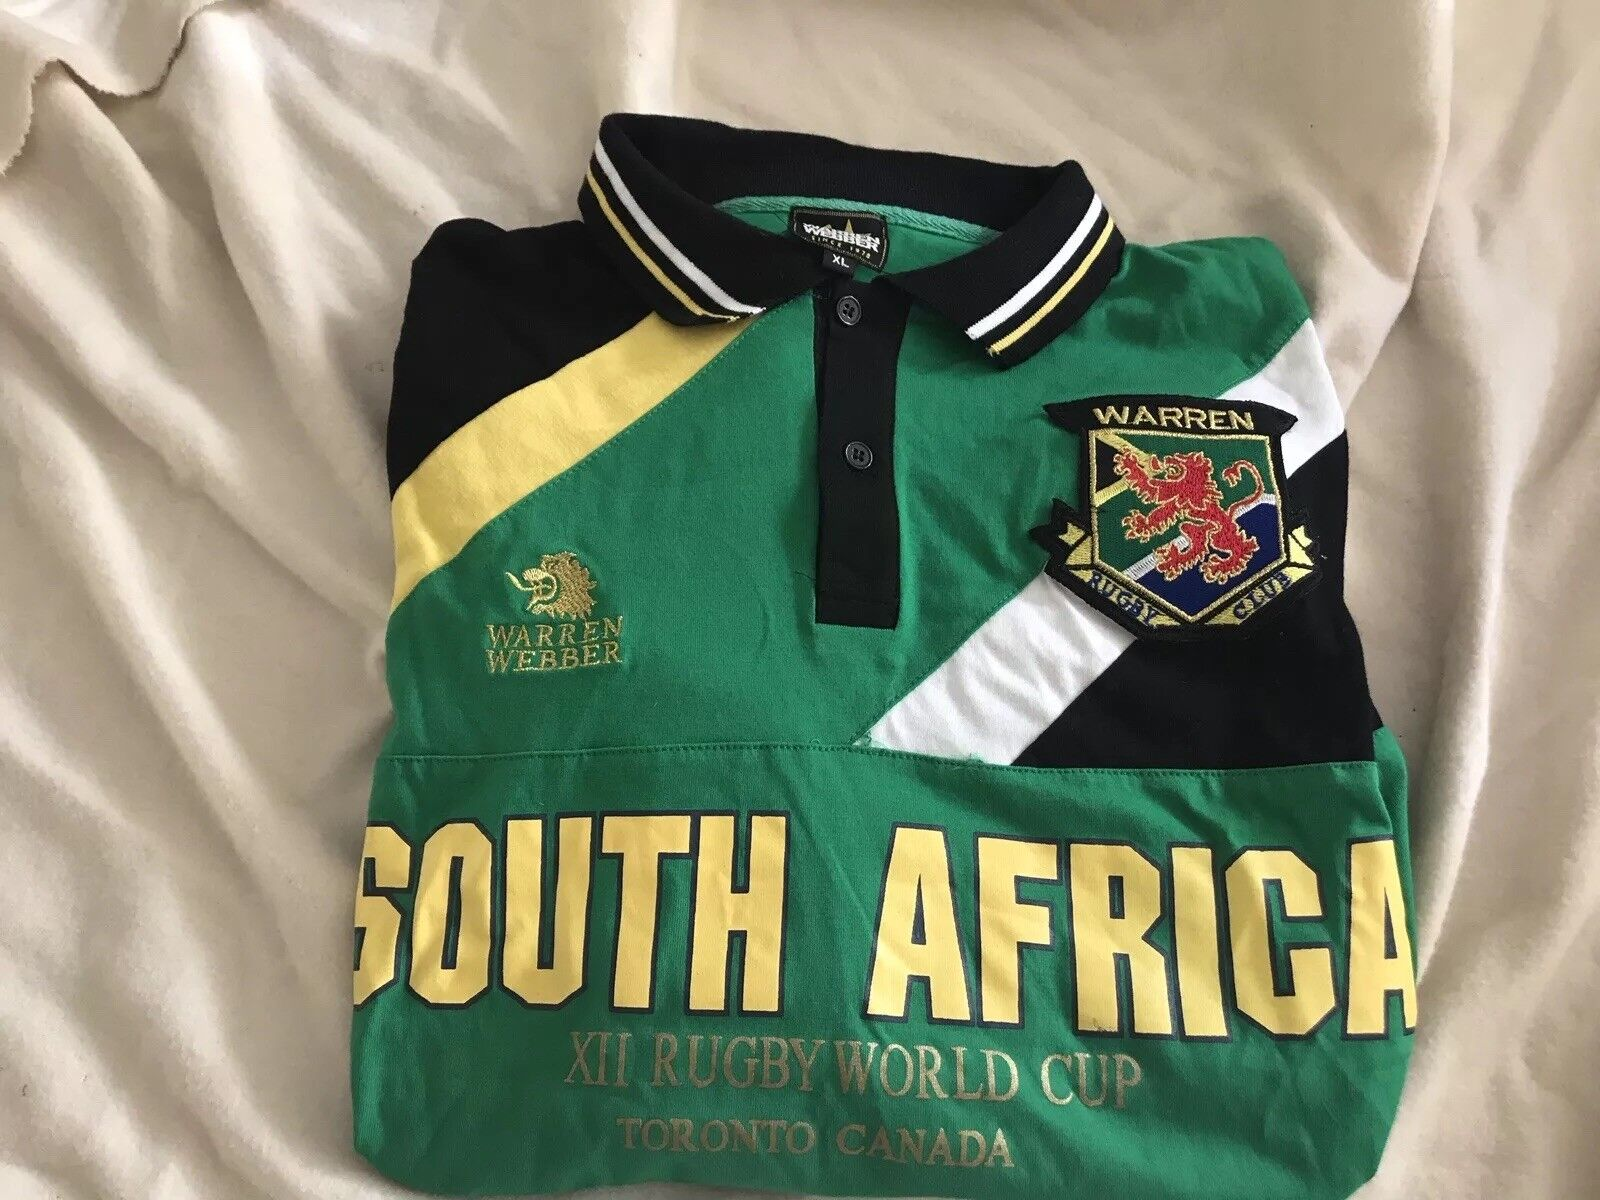 Warren Webber XII Rugby World Cup South Africa Polo